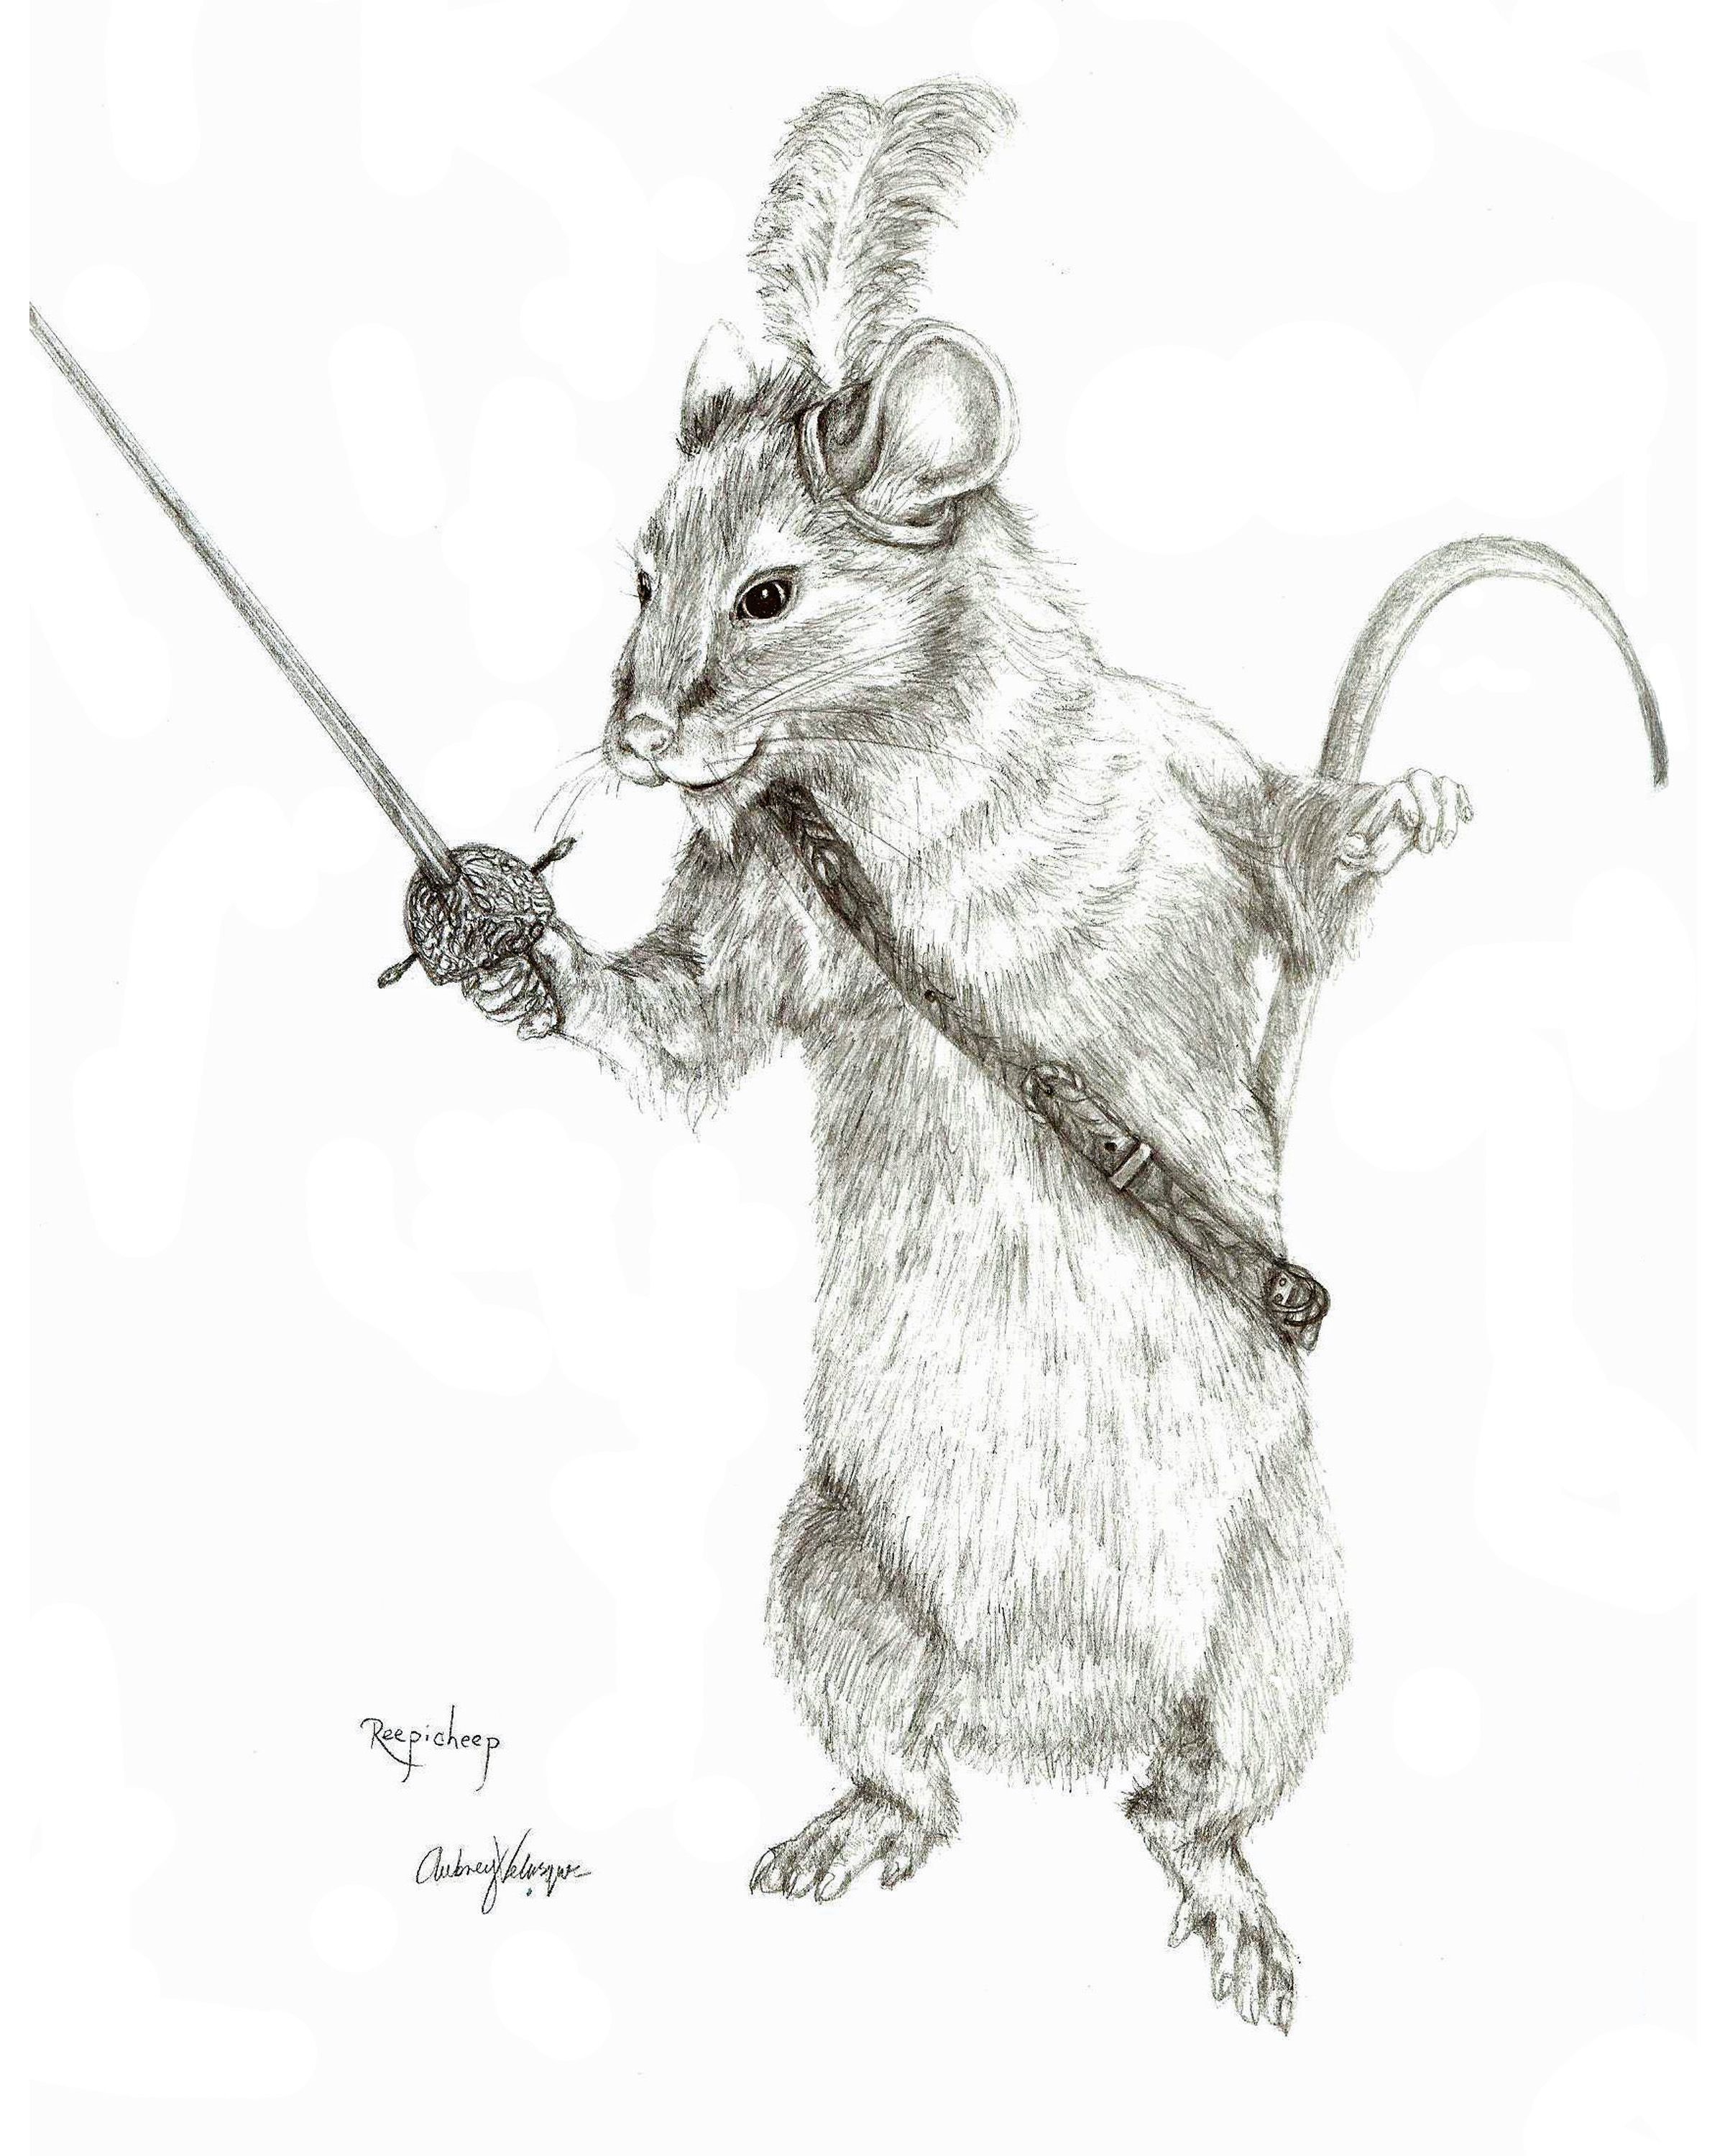 narnia coloring pages reepicheep quotes - photo#31